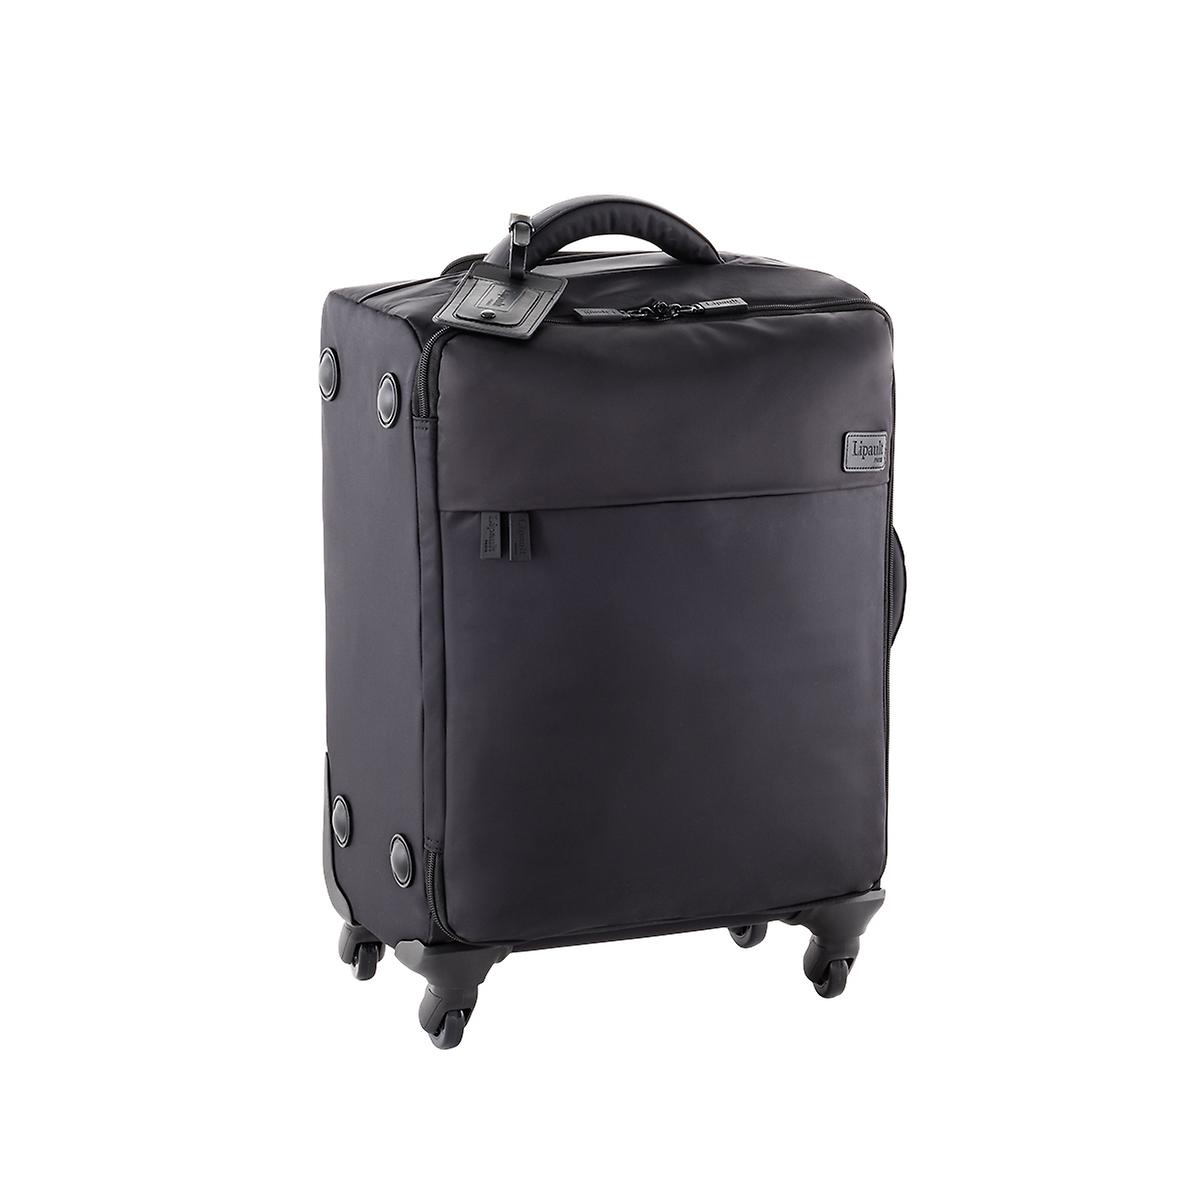 "Lipault Black 22"" Paris 4-Wheeled Luggage"